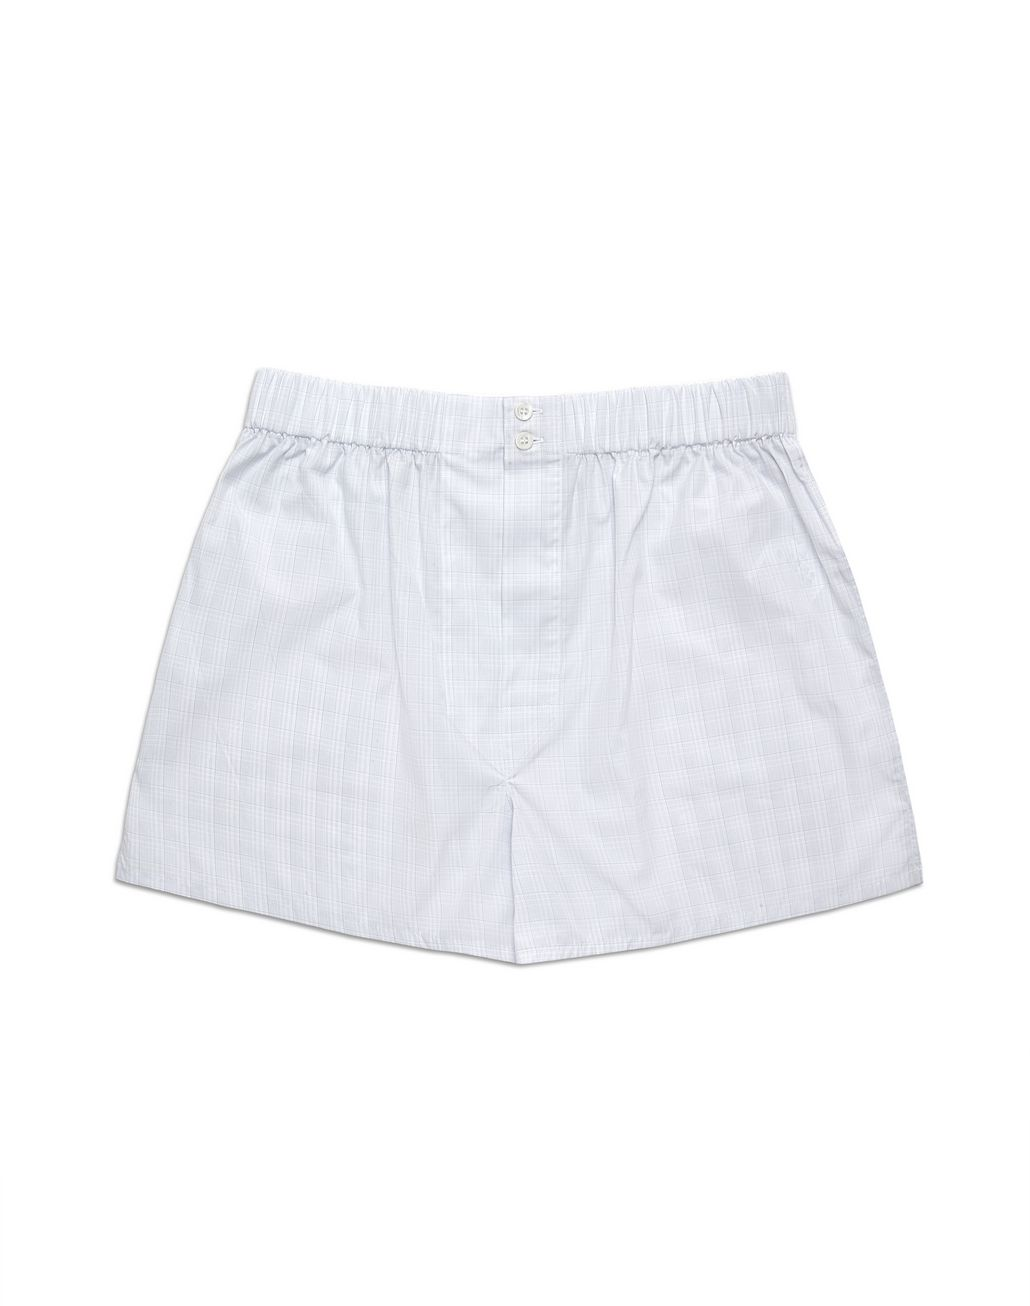 BRIONI Bluette and White Plaid Underwear Underwear [*** pickupInStoreShippingNotGuaranteed_info ***] f